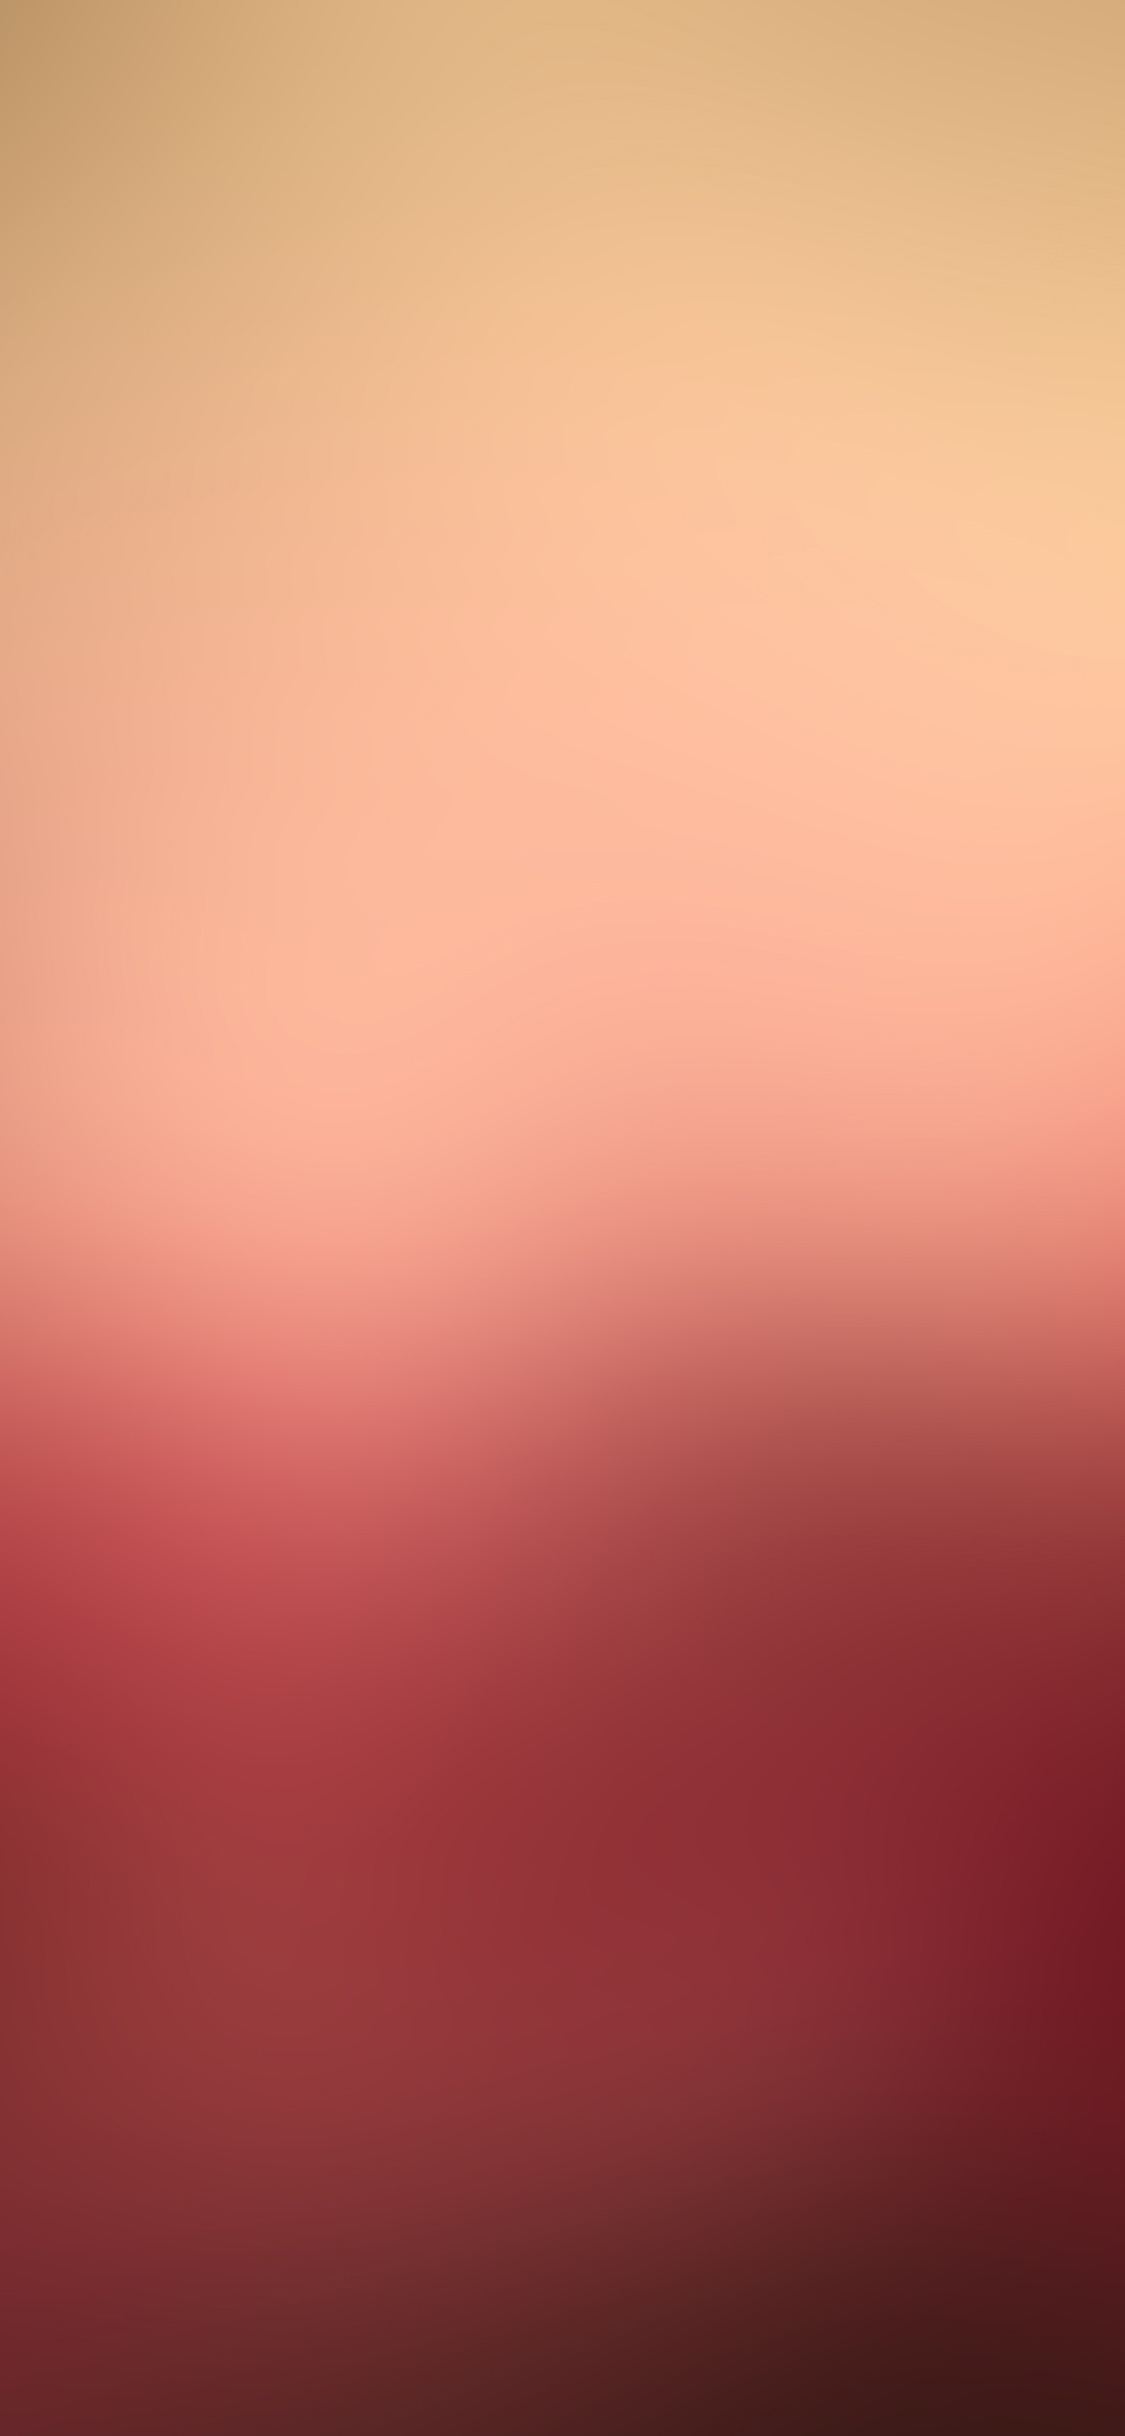 iPhoneXpapers.com-Apple-iPhone-wallpaper-sf27-lychee-red-gradation-blur